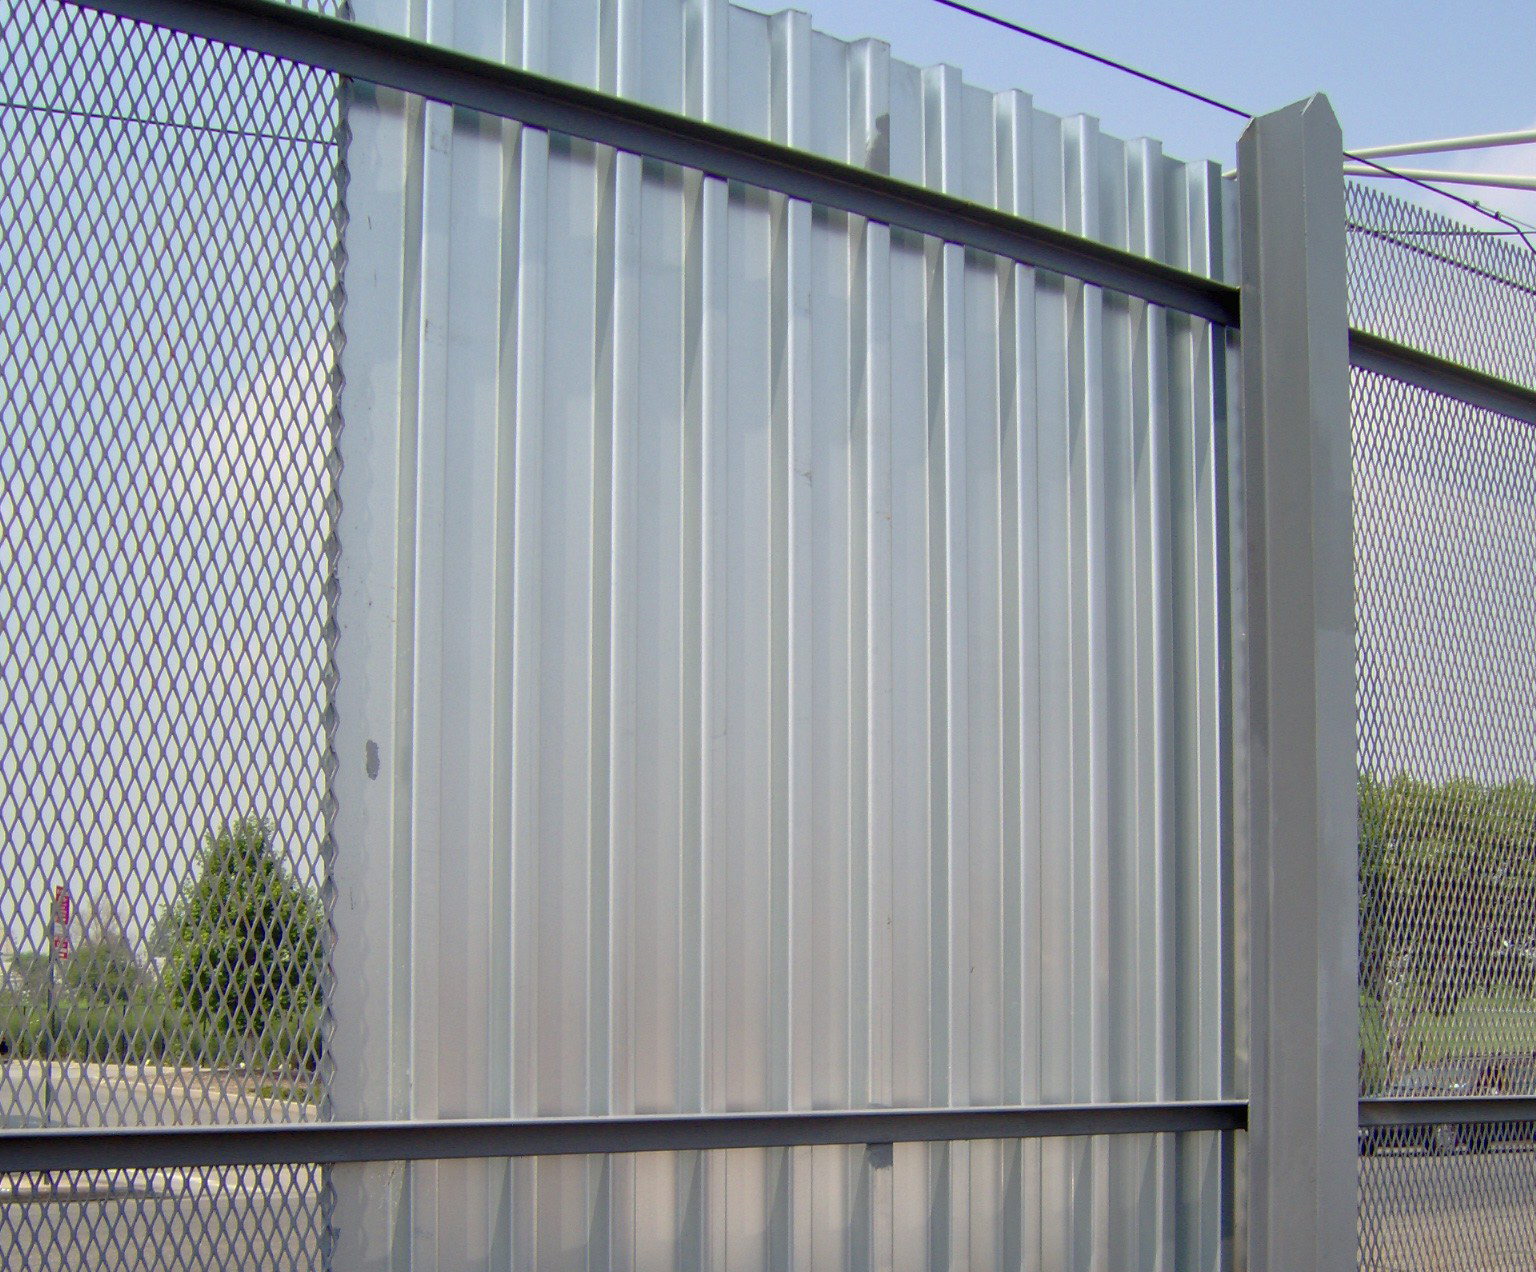 Exterior Metal Fence Panels